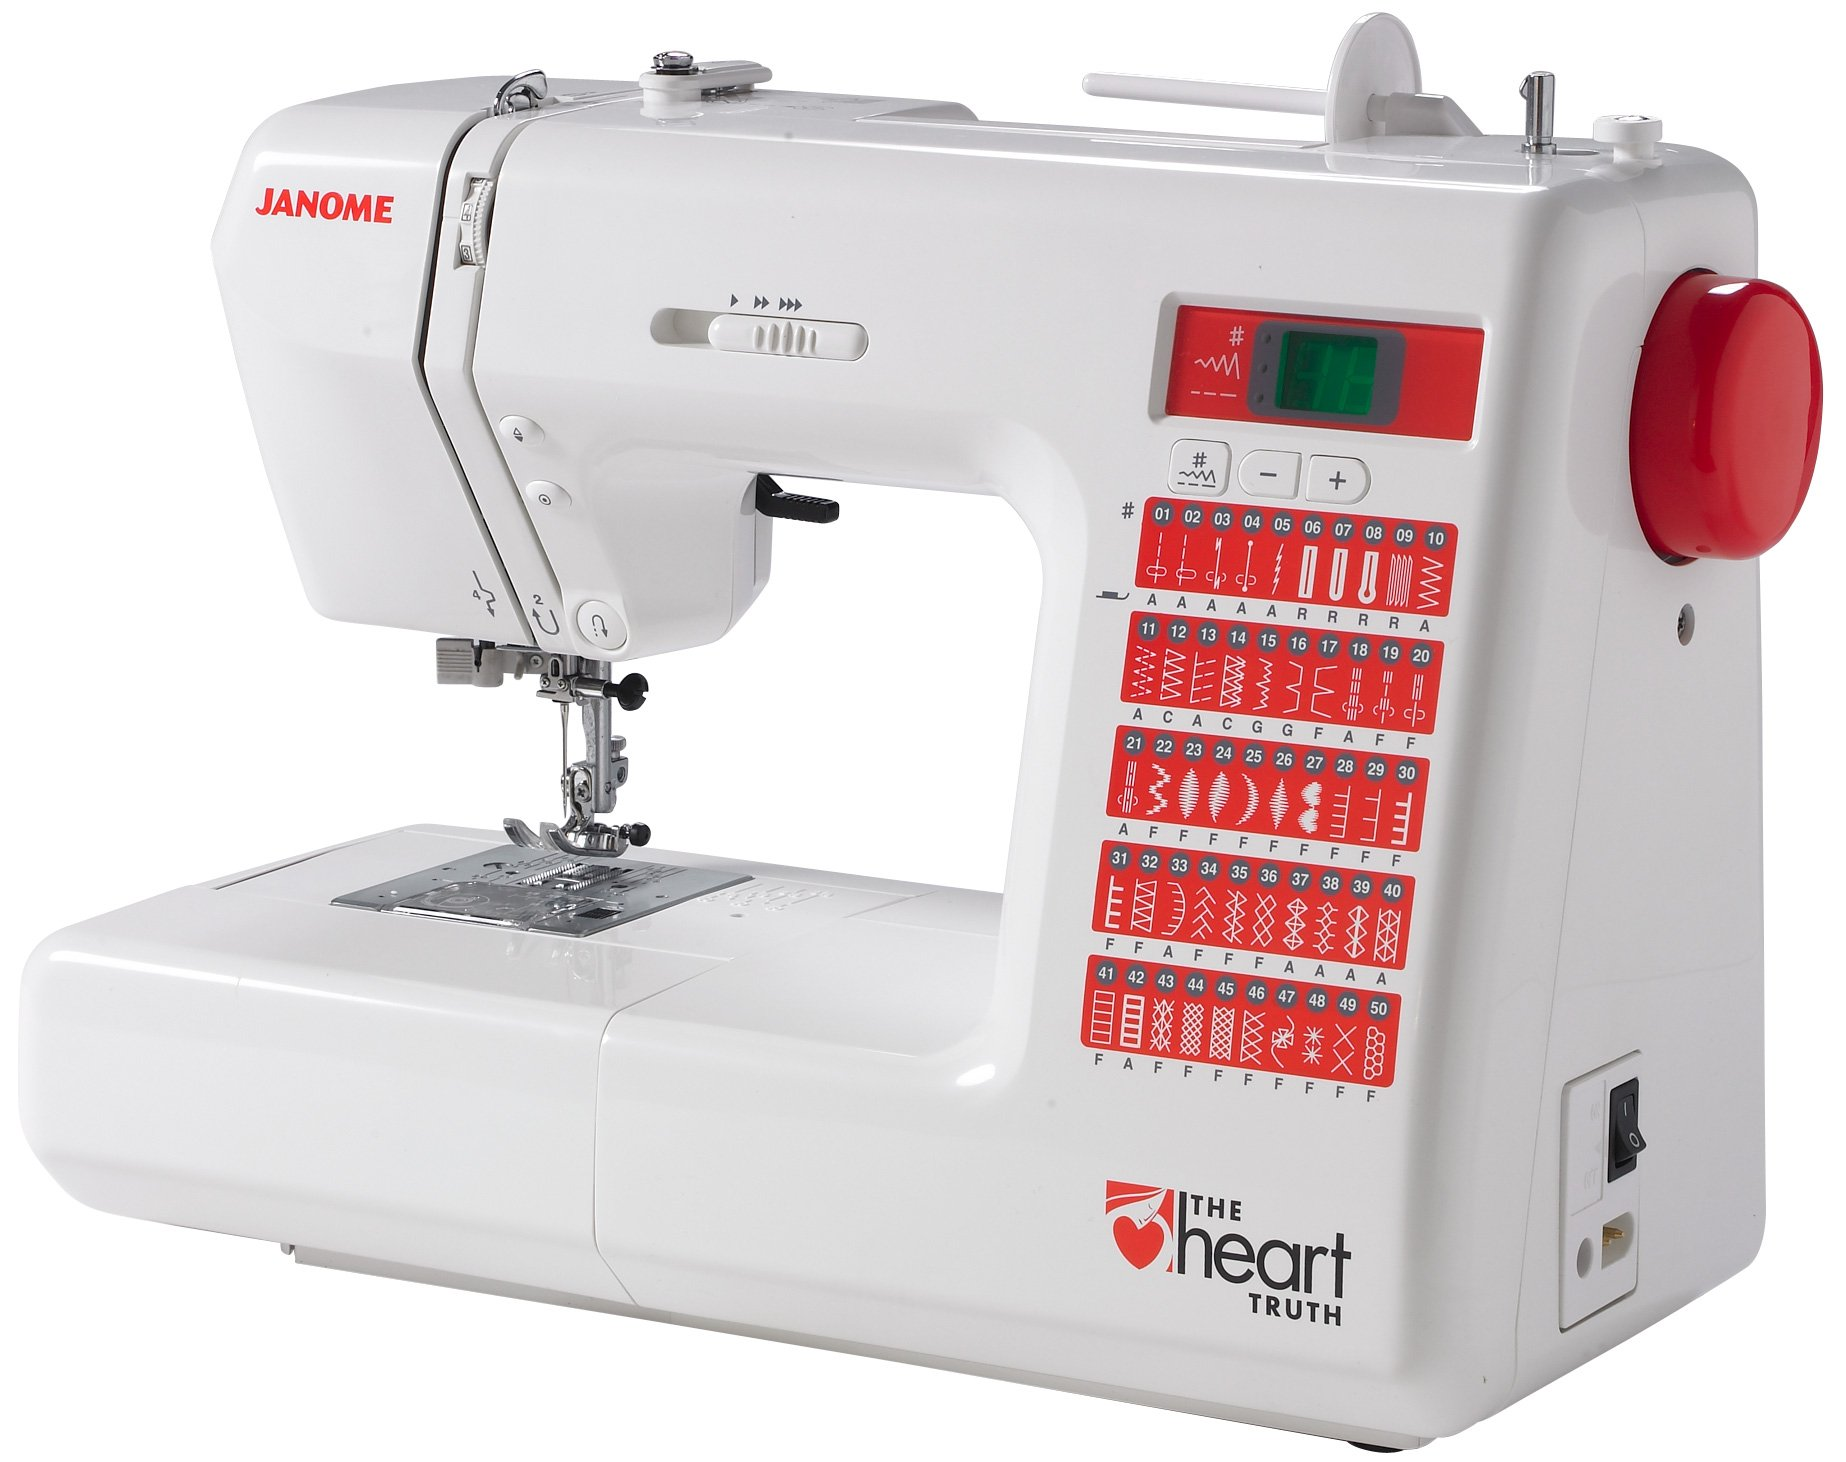 Pre Owned Janome Ht2008 Heart Truth Machine